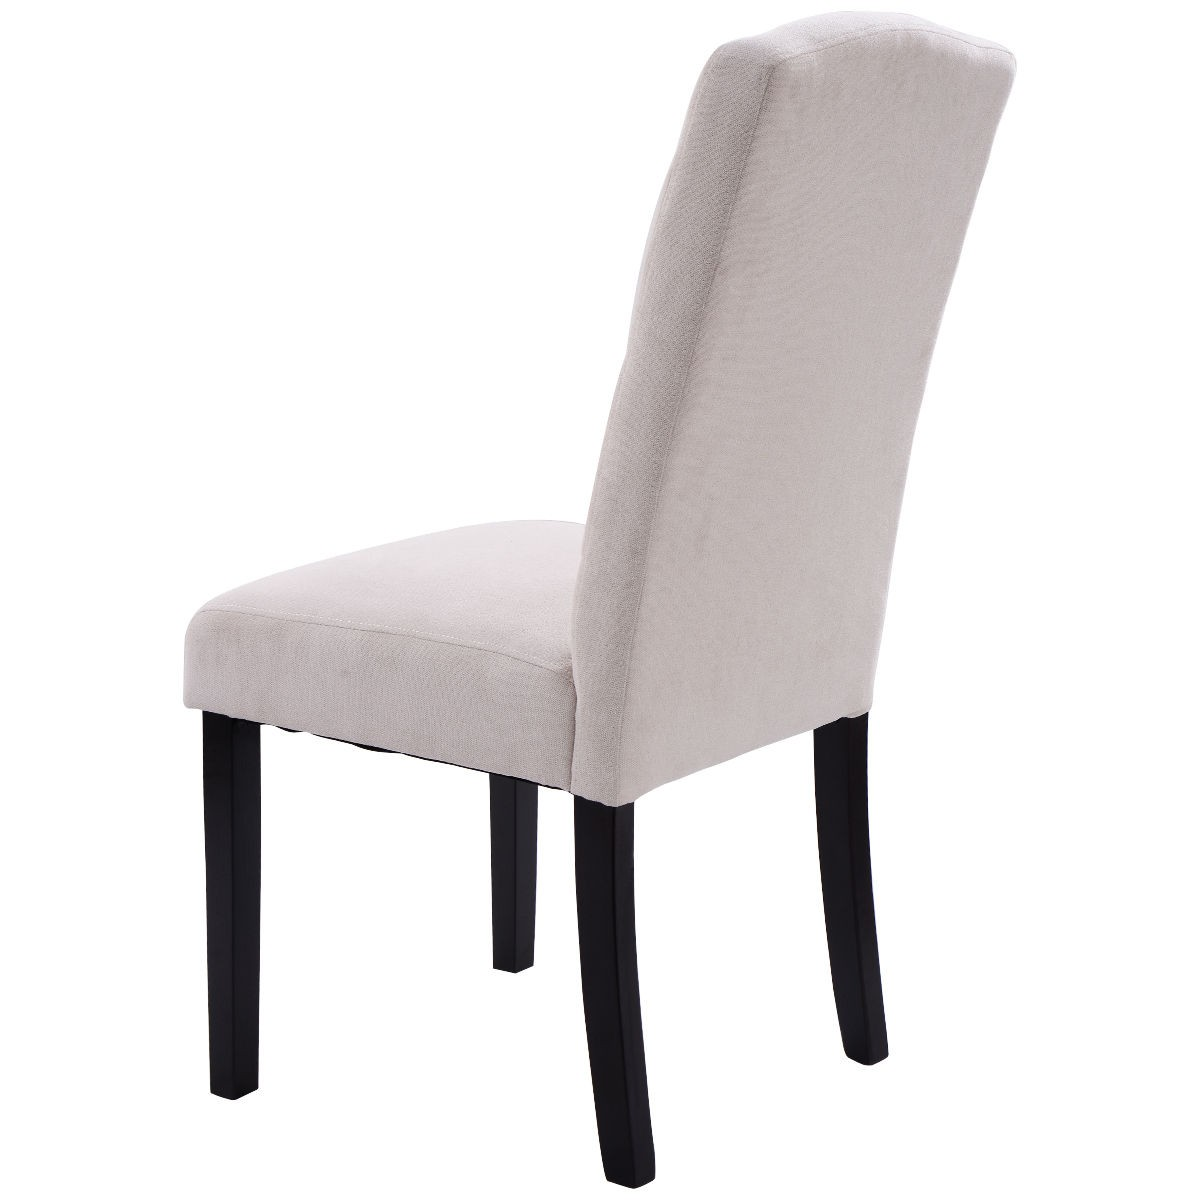 Dining Chair Set 2 Pair Accent Tufted Kitchen Modern Side: Wood Set Of 2 Fabric Accent Tufted Modern Dining Chair